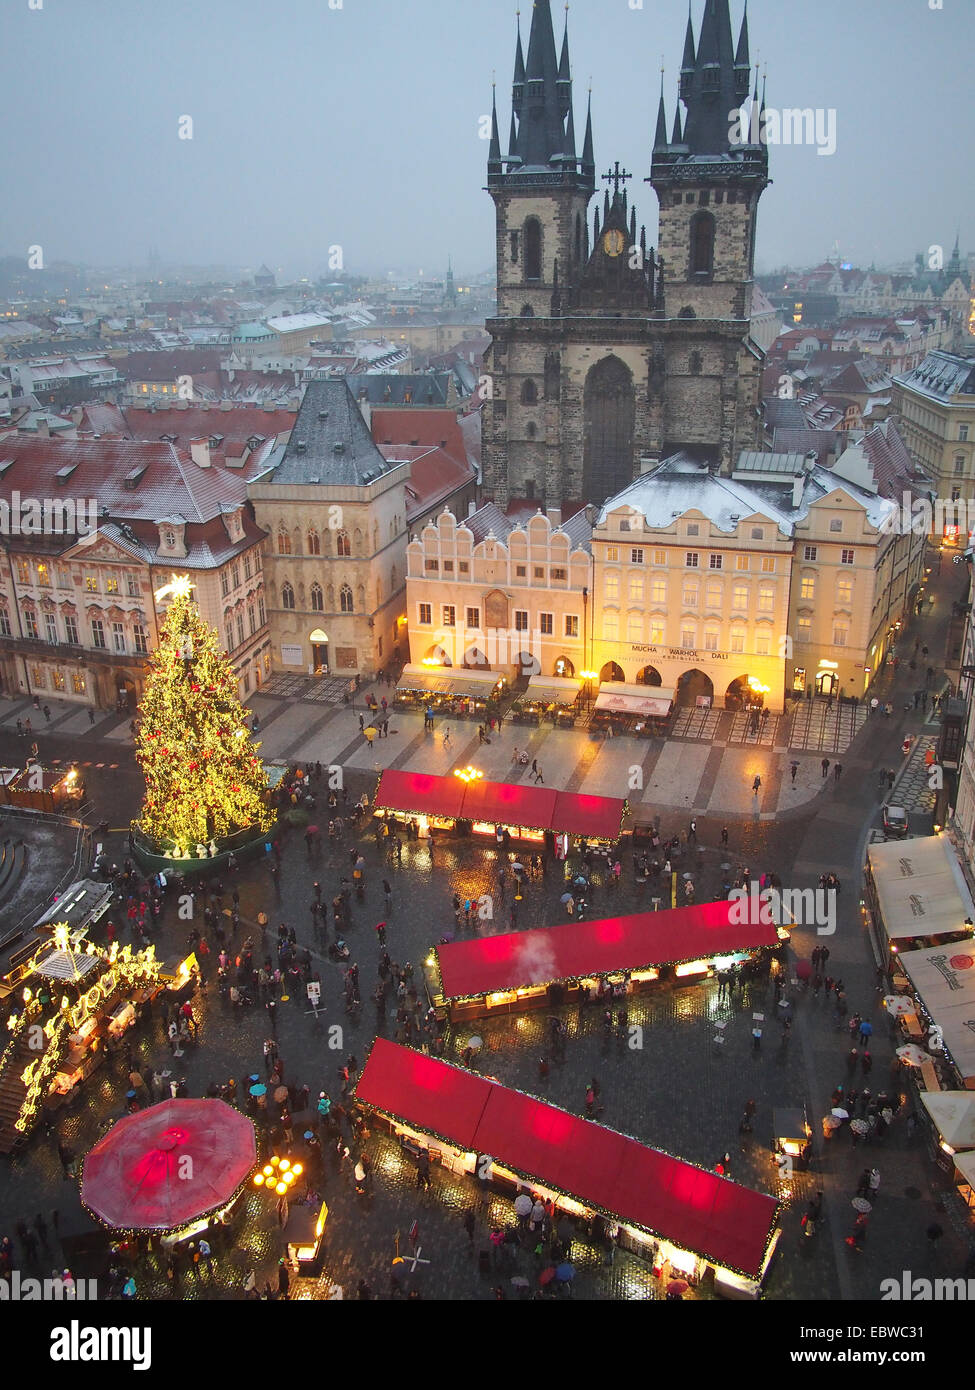 View looking down on the traditional Christmas Market in the Old Town Square in Prague at night - Stock Image